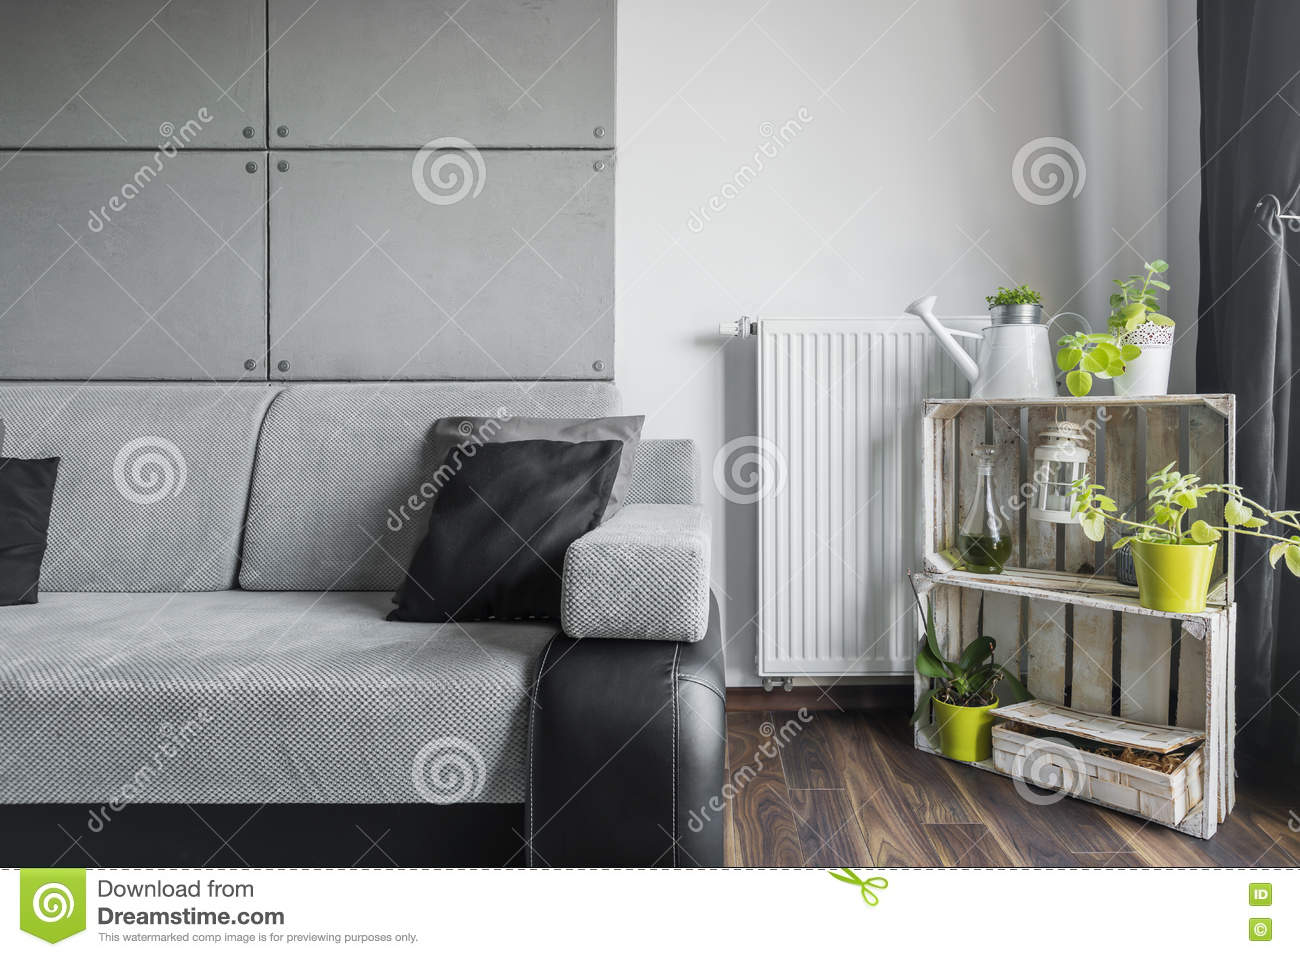 Grey Living Room With Creative Decor Stock Image - Image ...